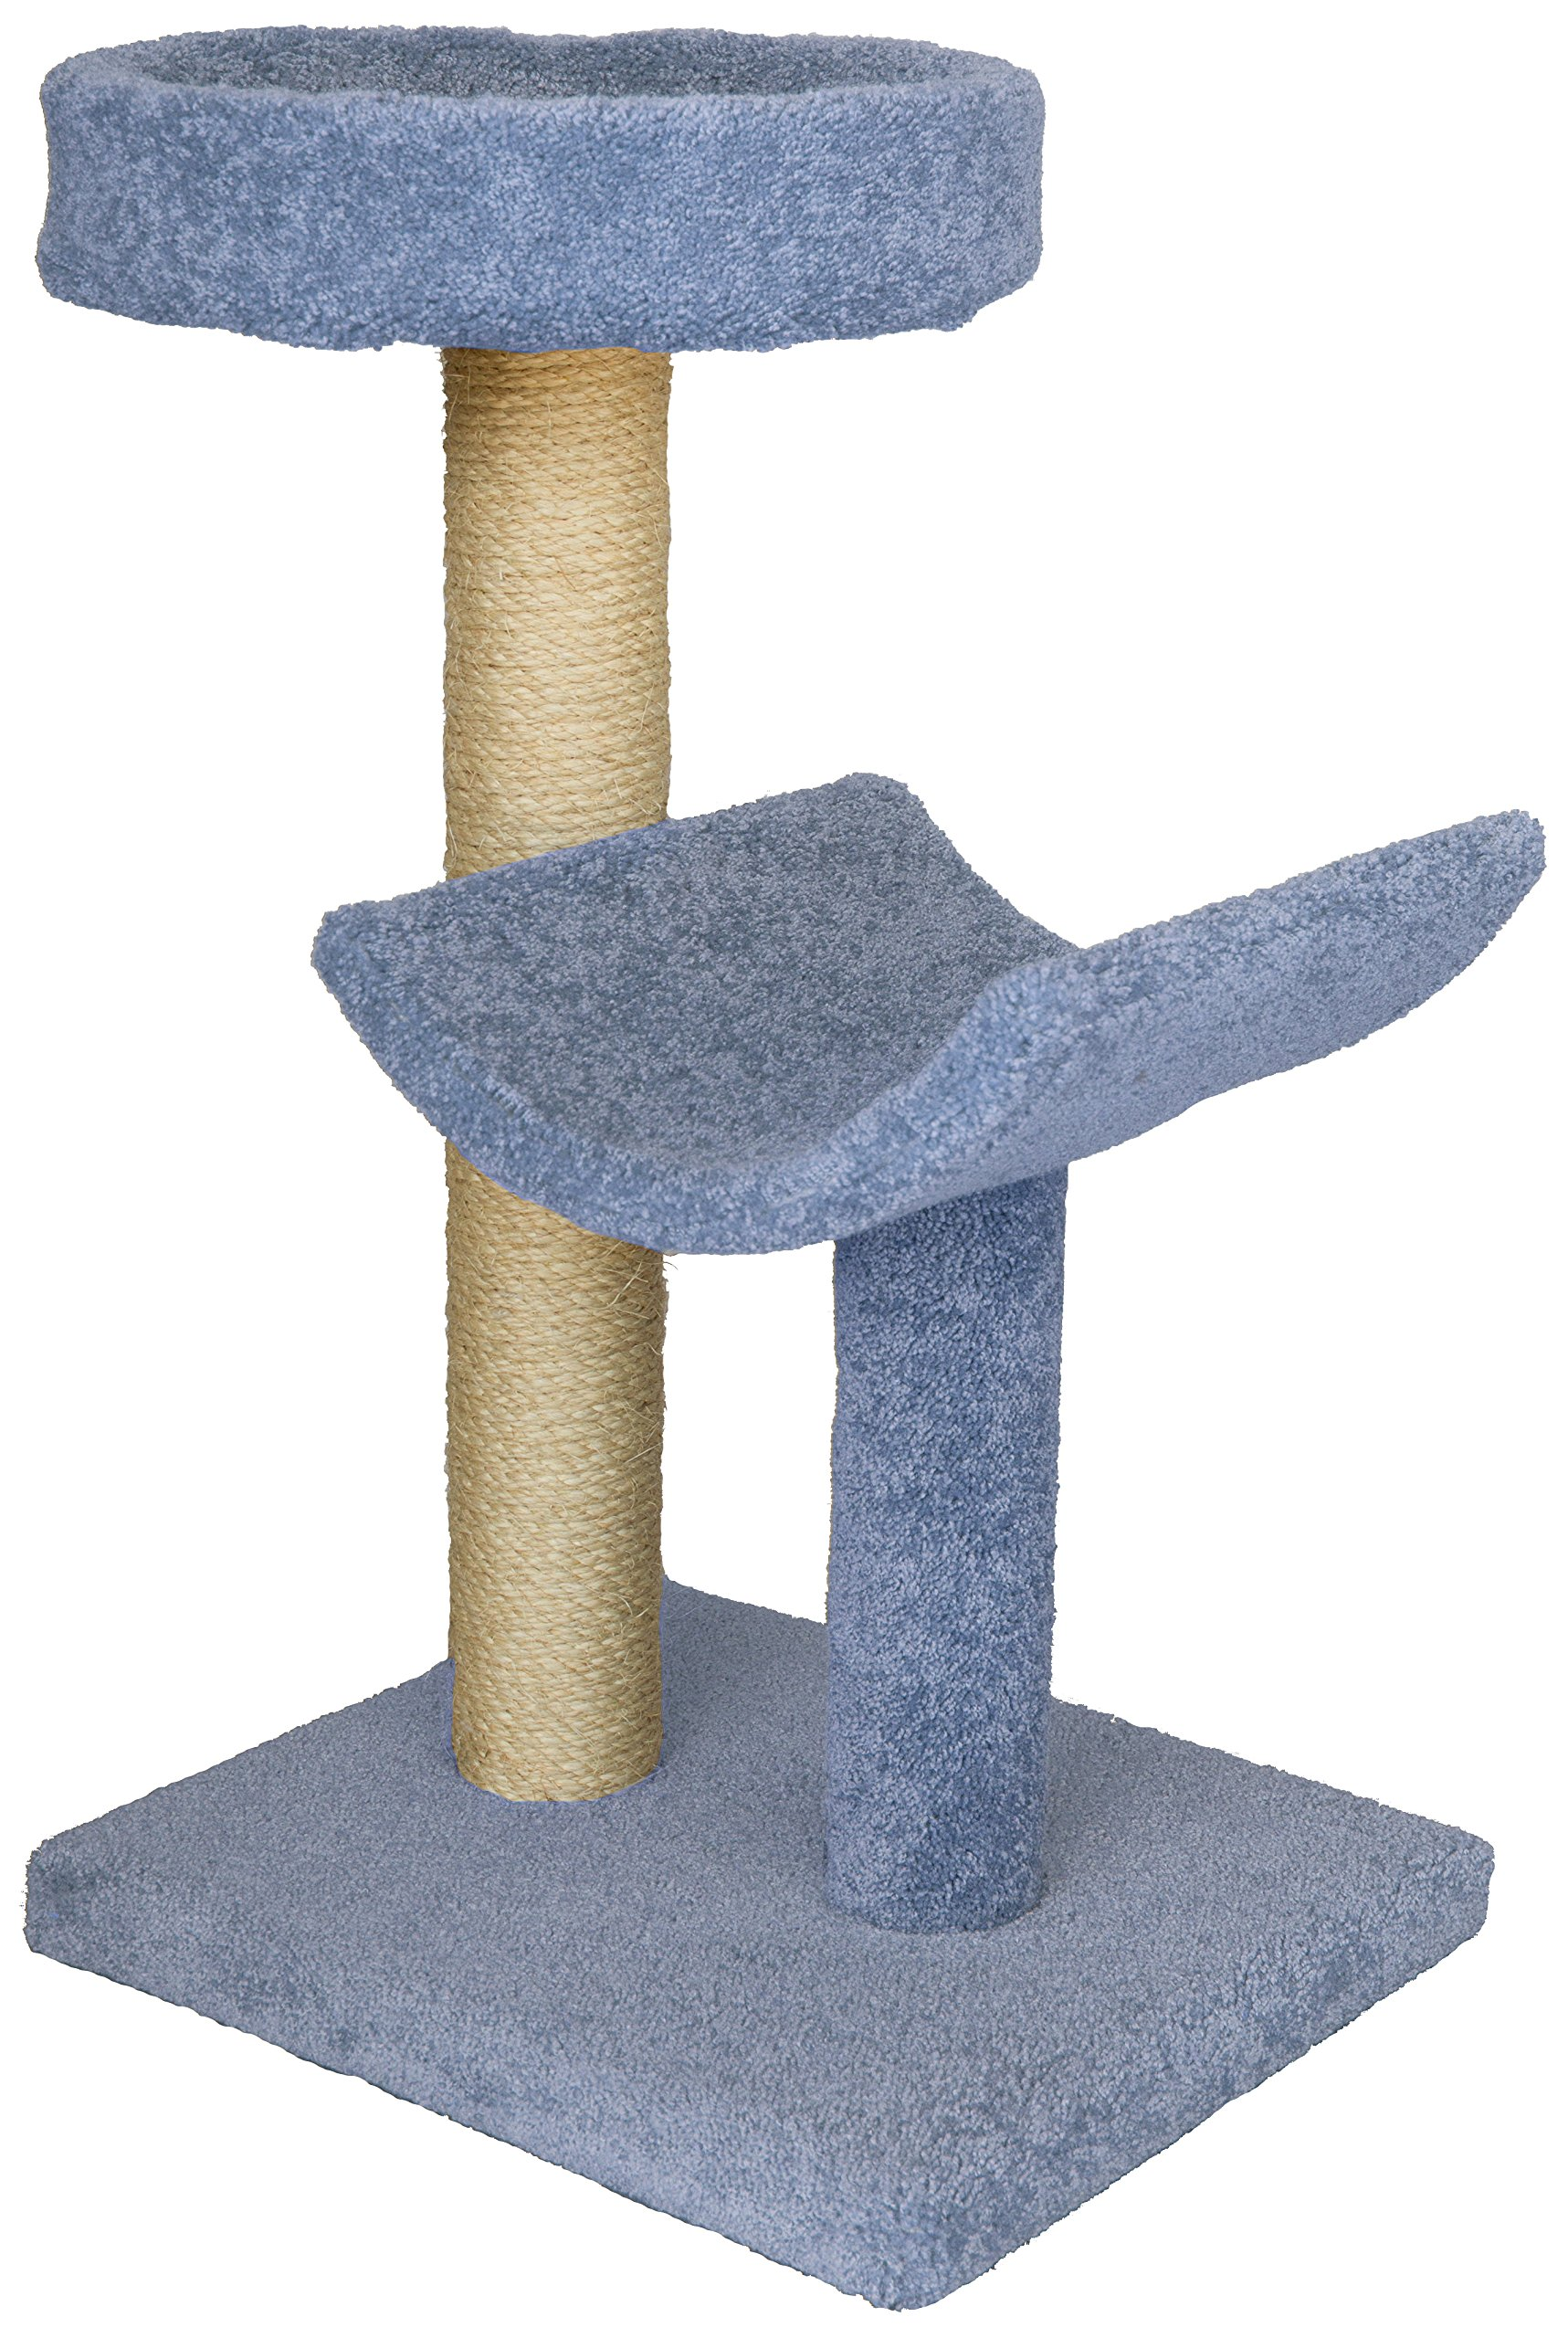 Molly and Friends MF-23-blue Two-Tier Scratching Post Furniture, Blue